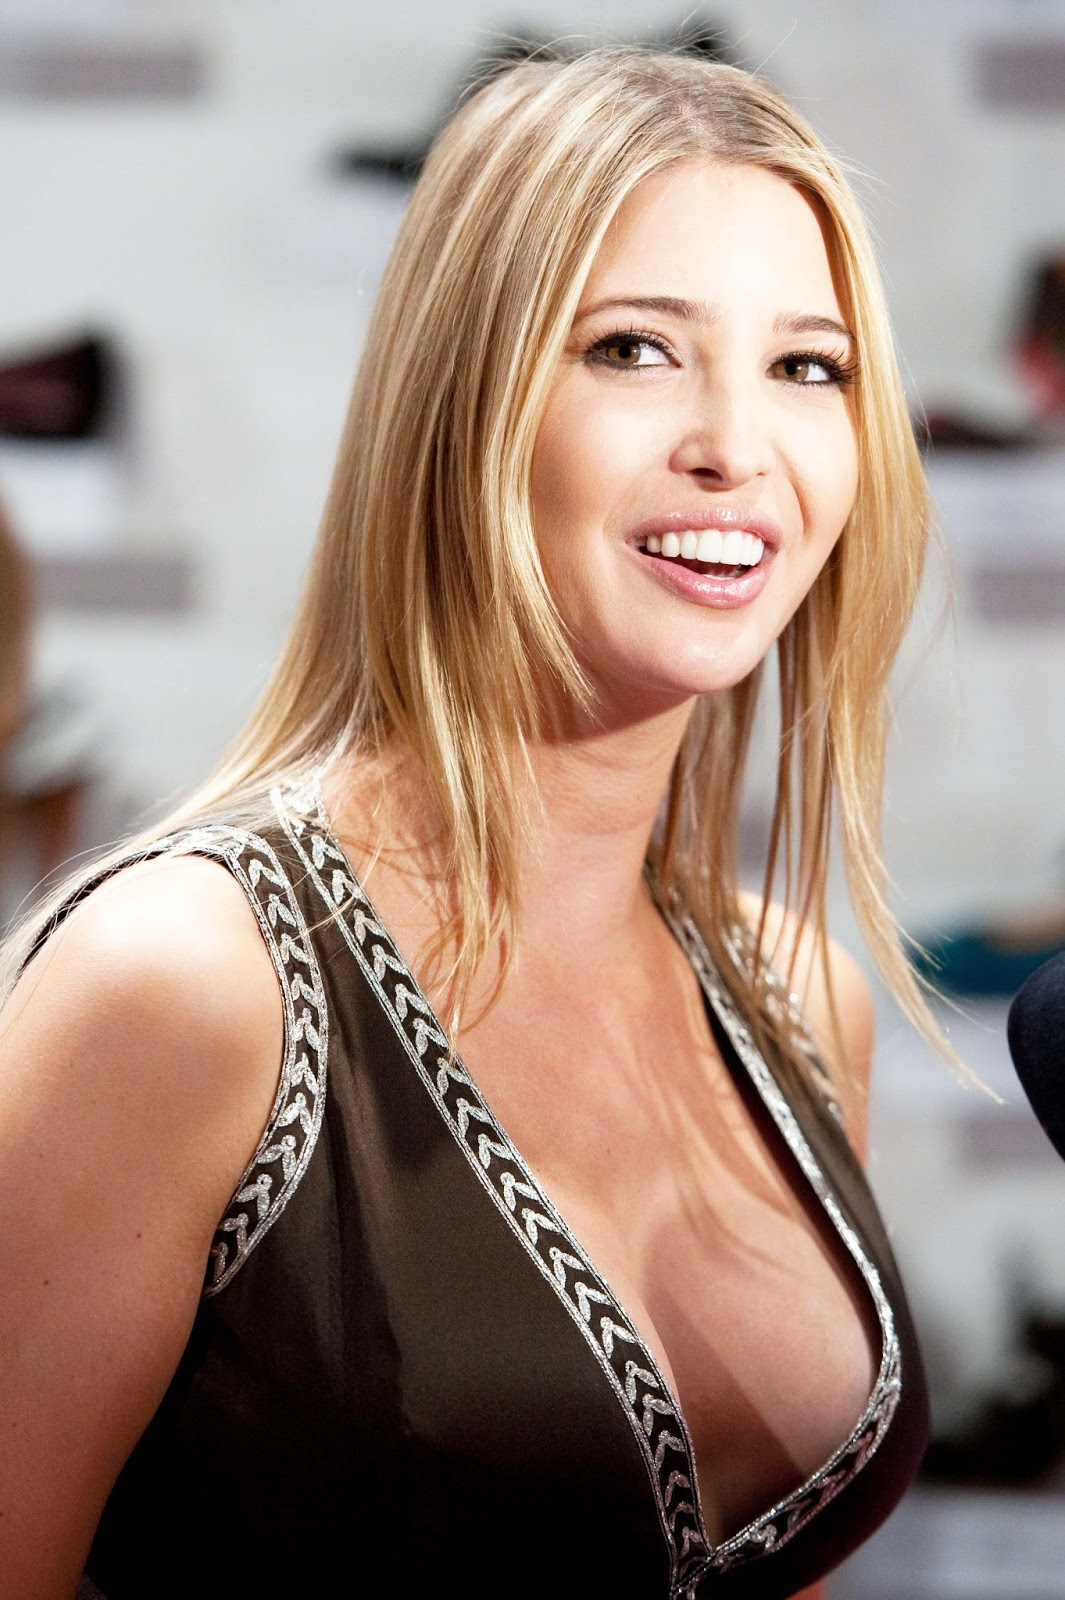 Ivanka Trump Hottest Photos | Sexy Near-Nude Pictures